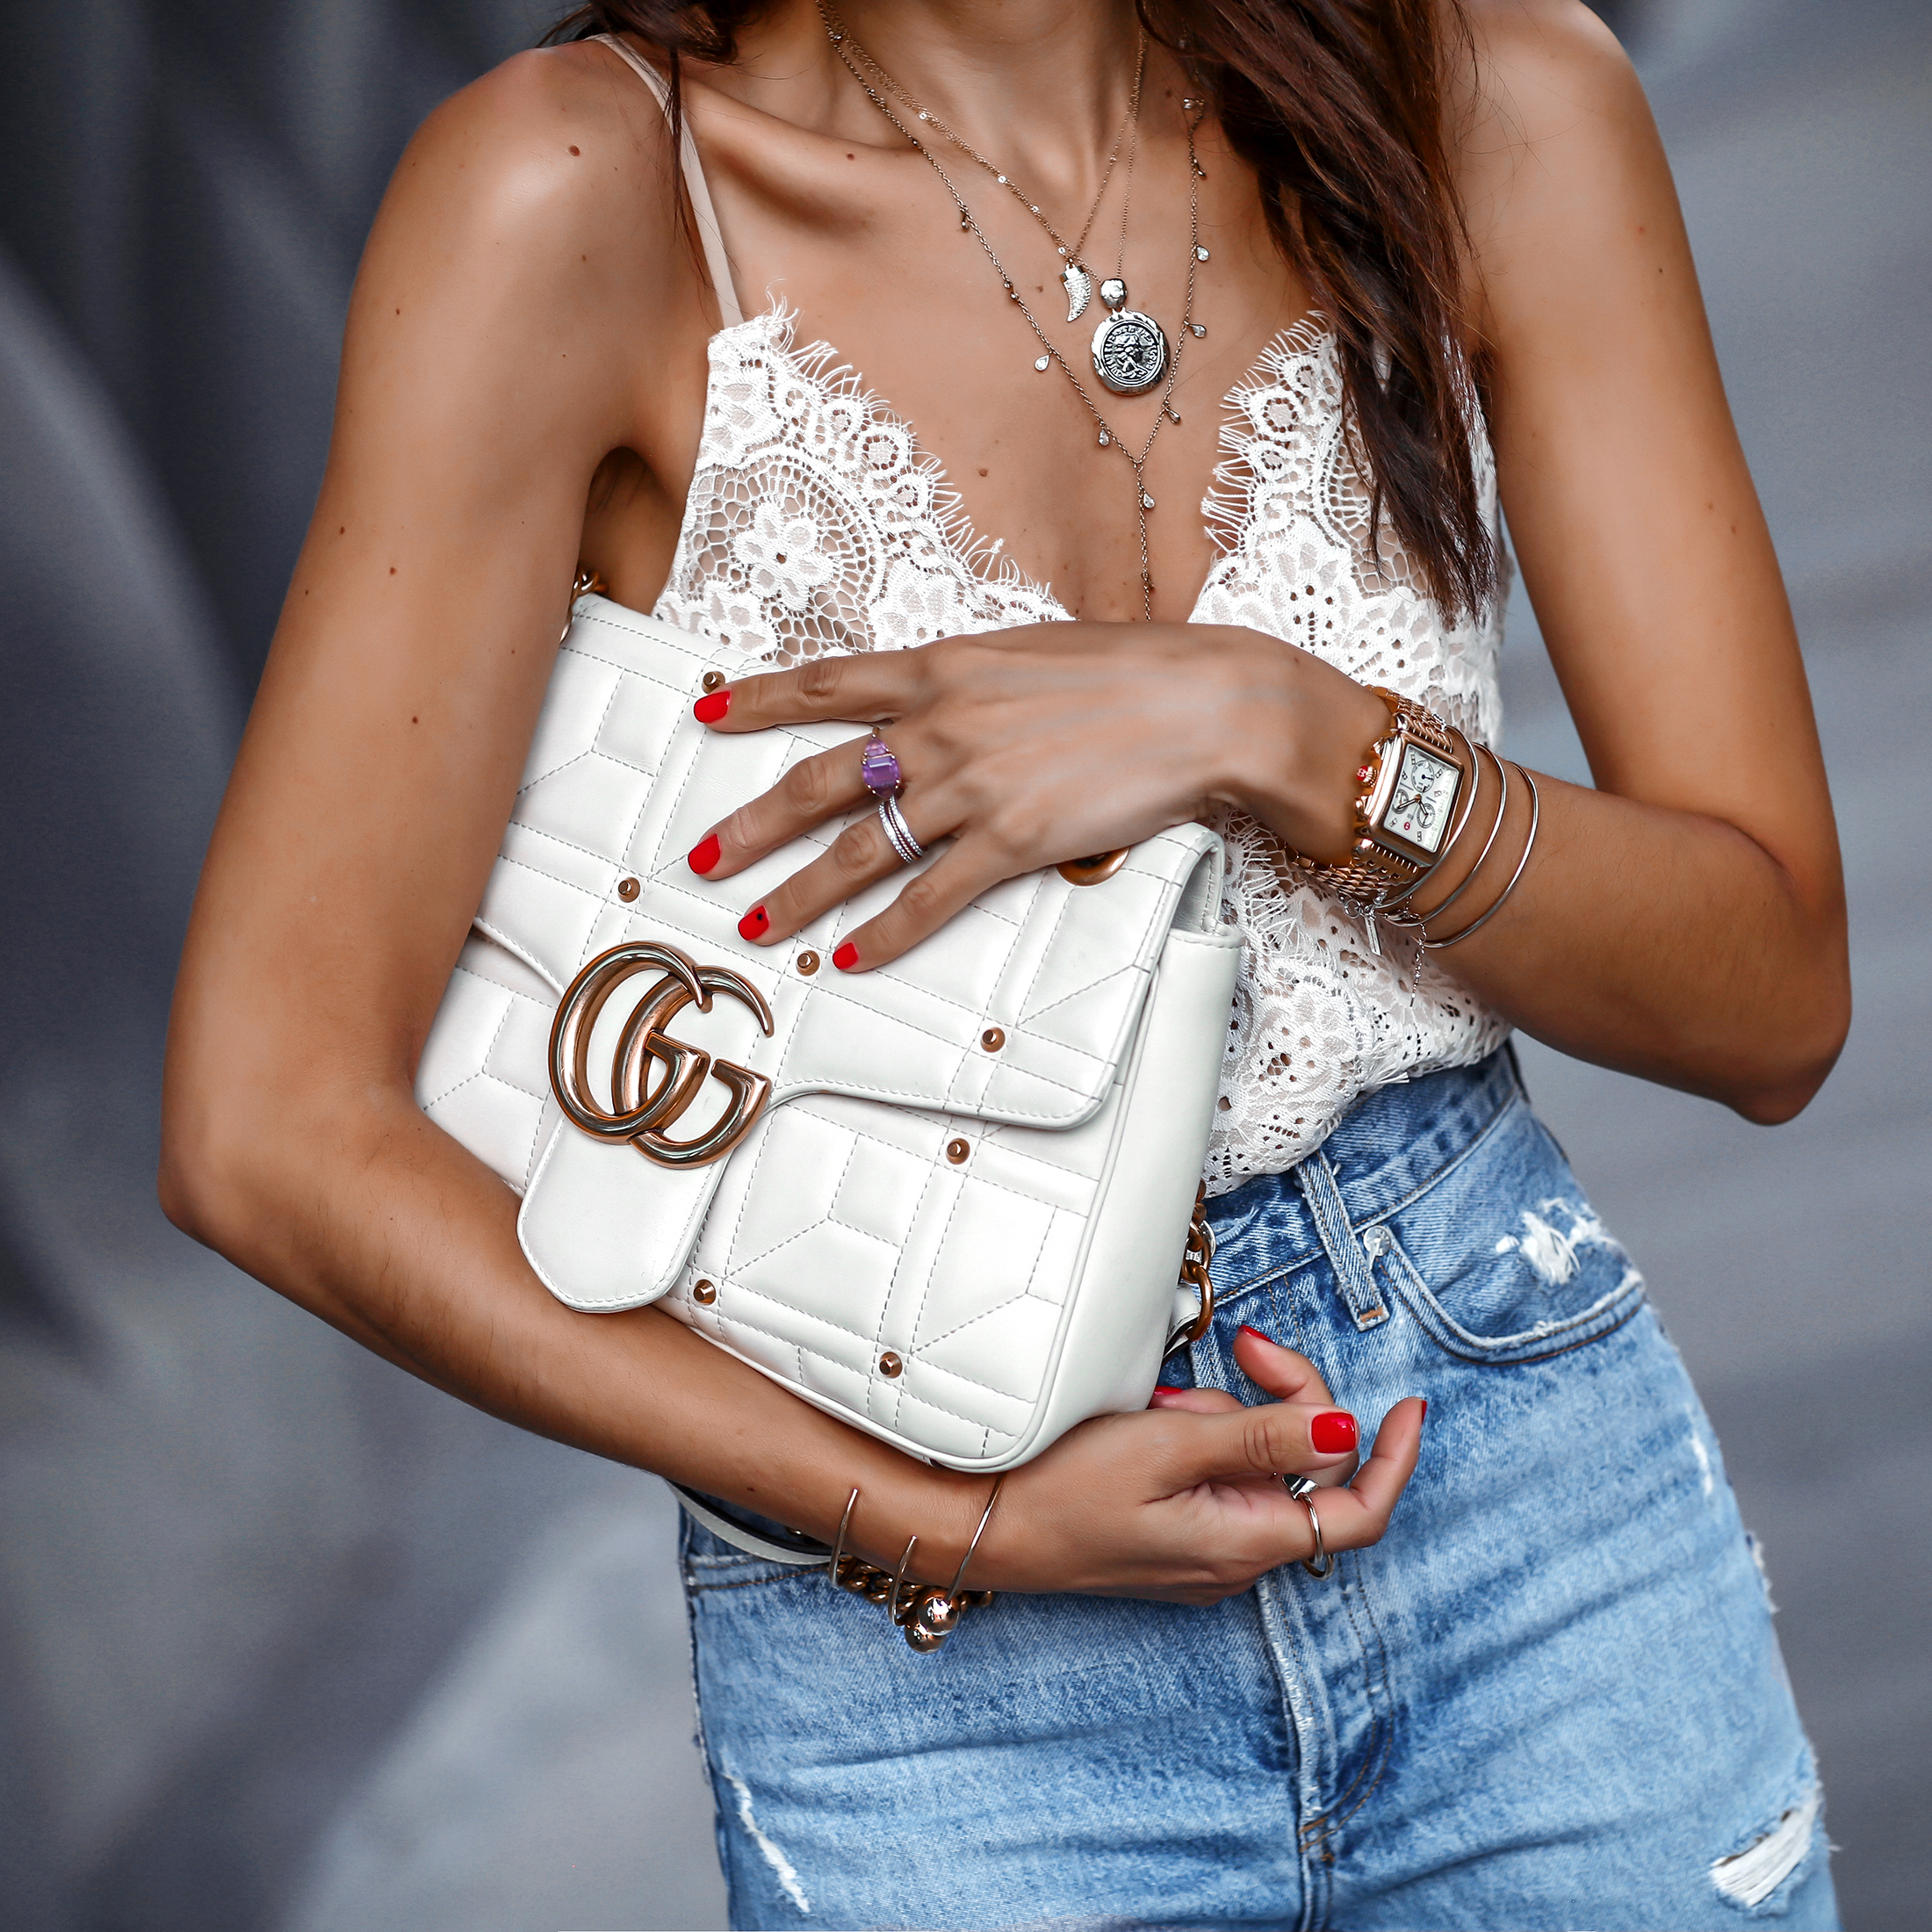 Detail Shot Of Brunette Woman in Lace Top White Gucci Marmont Bag